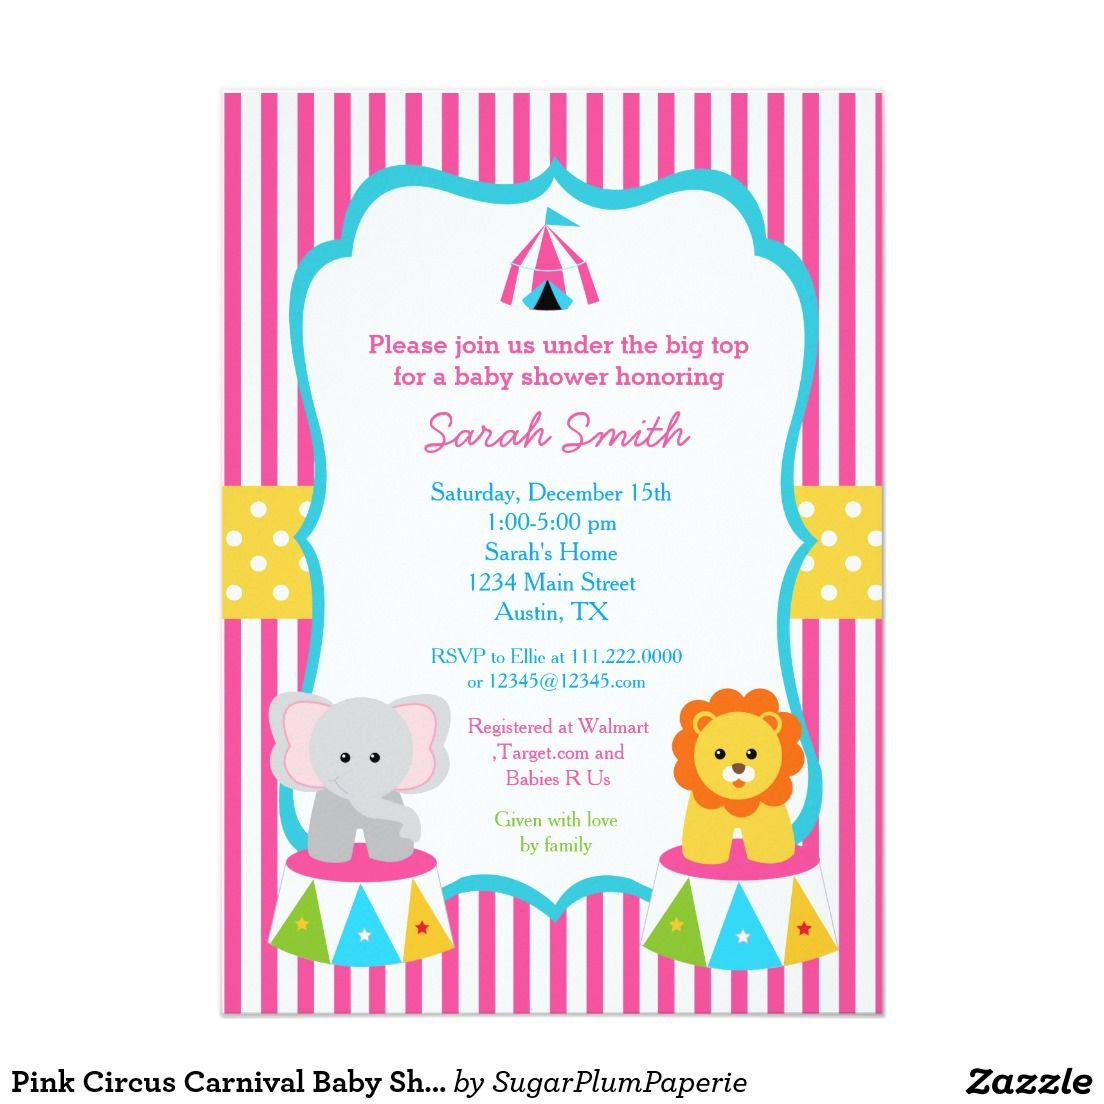 Pink Circus Carnival Baby Shower Invitations Girls | Baby Shower ...